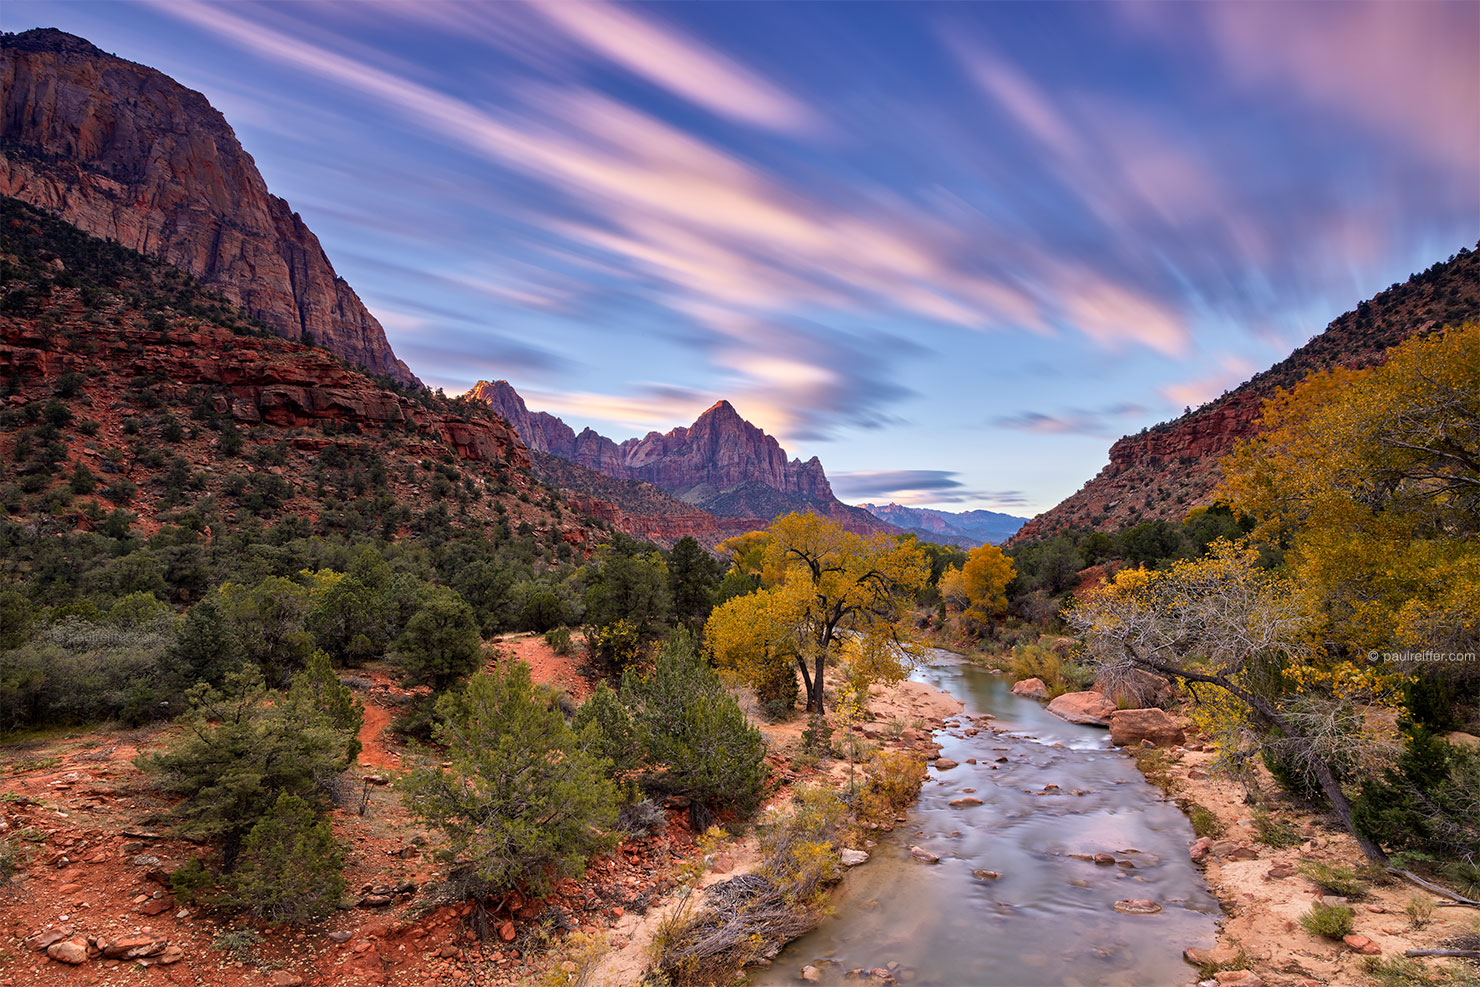 zion first light paul reiffer national park utah sunrise fall autimn virgin river the watchmen sky long exposure ultimate photography professional landscape